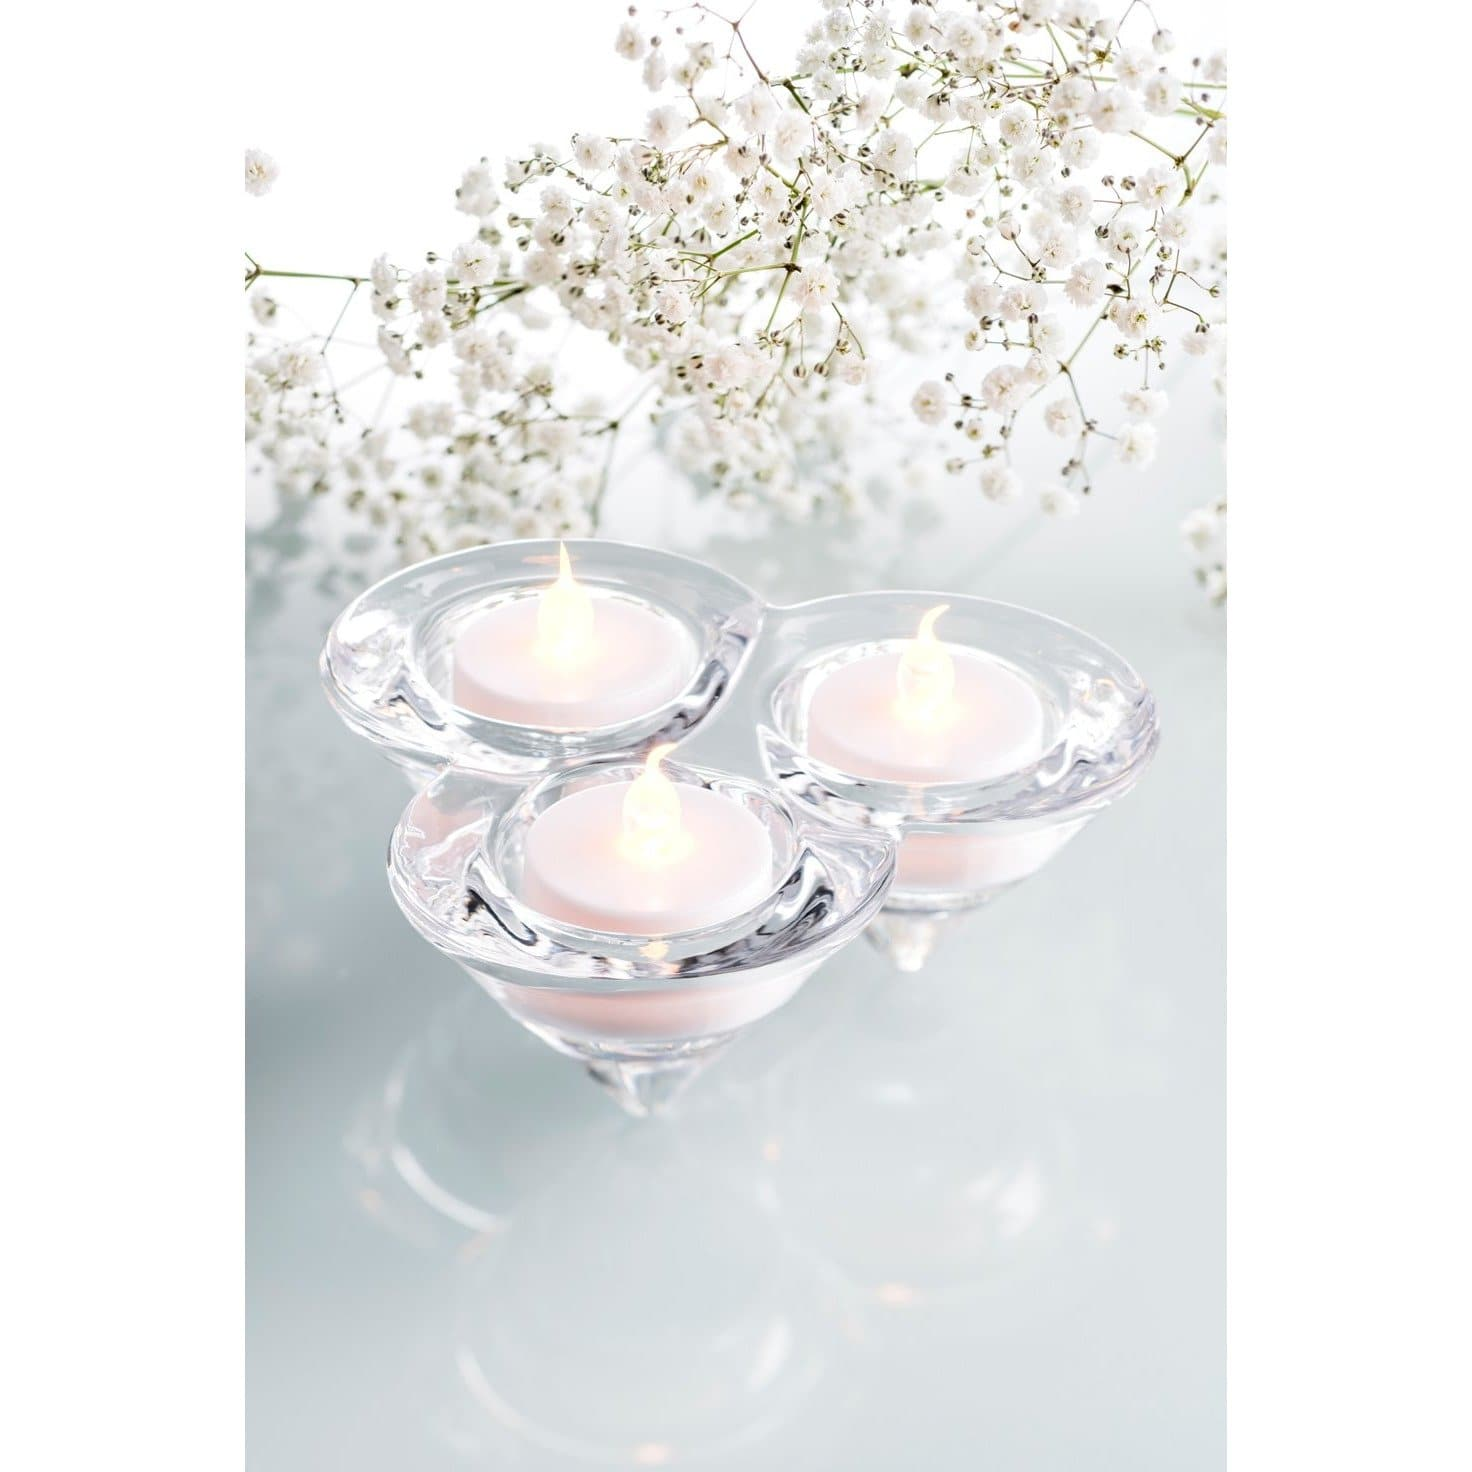 *OUT OF STOCK* NEW Trio Votive (LED Tealights) G40181